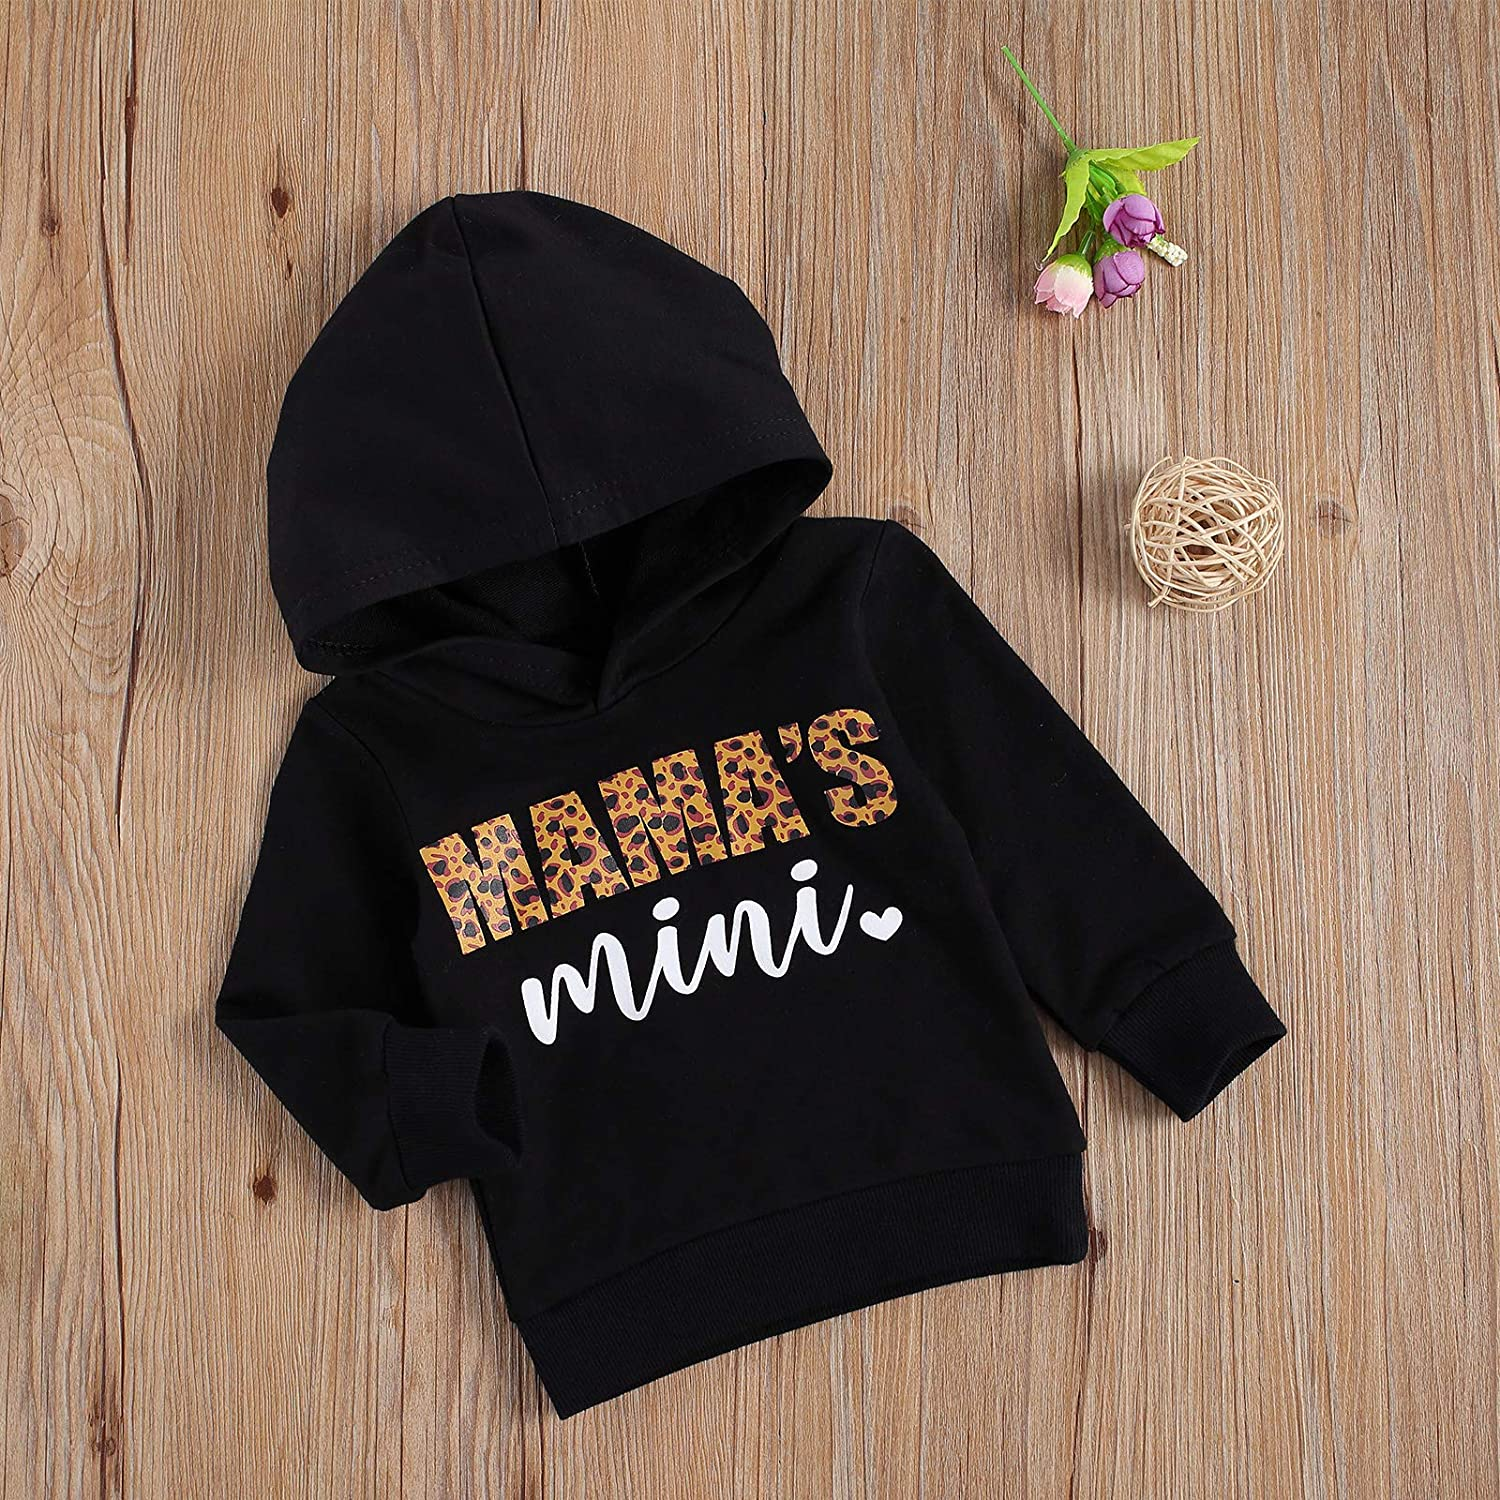 Infant Toddler Baby Girl Boy Hoodies Sweatshirt Long Sleeve Hooded Pullover Sweater Casual Tops Fall Winter Clothes